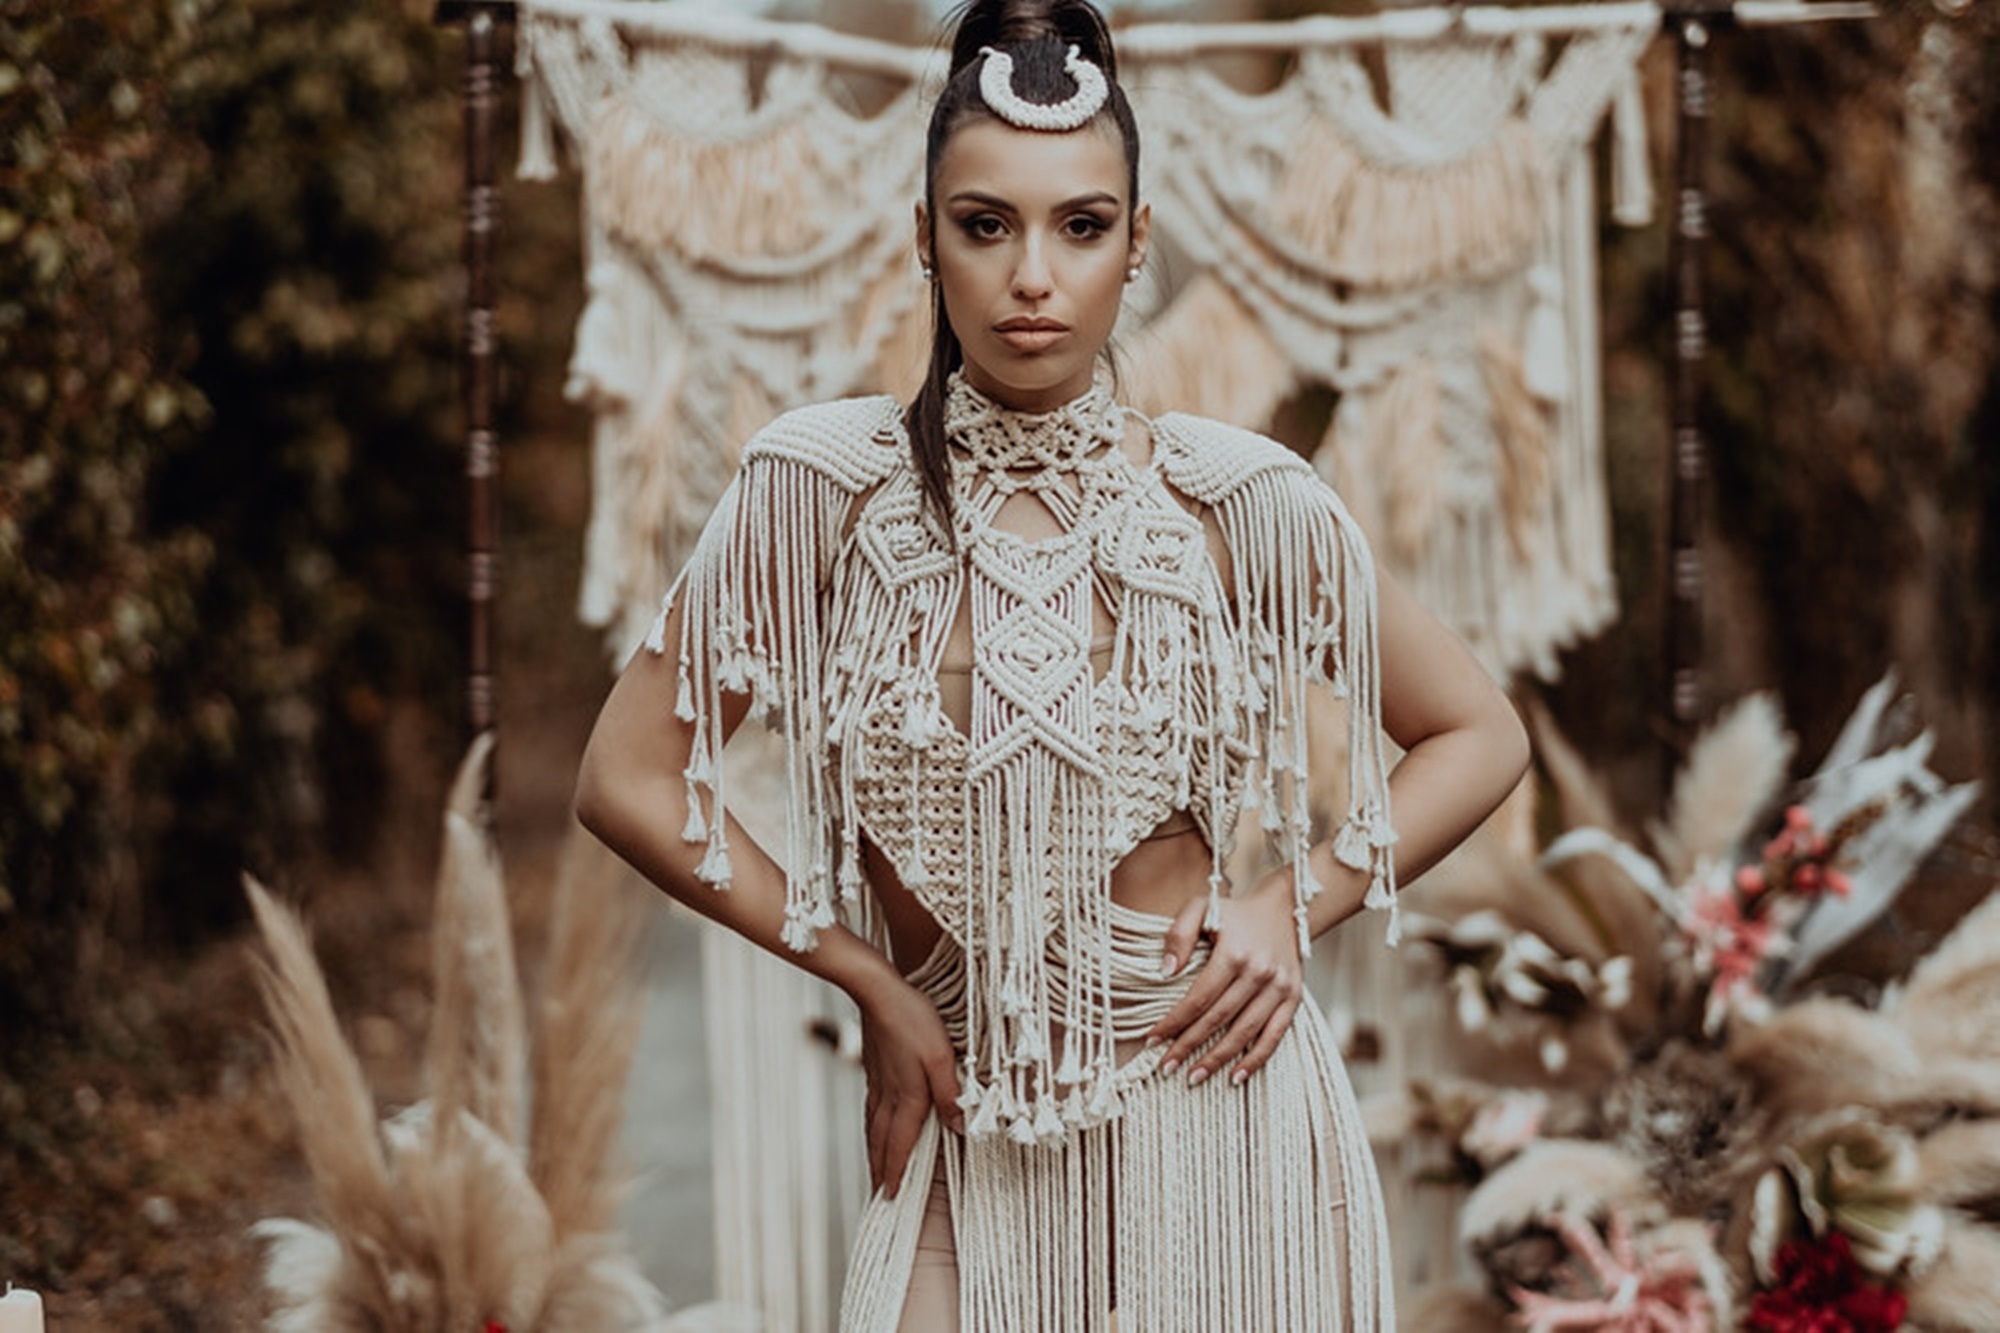 Oriental inspirational shoot with macramé elements